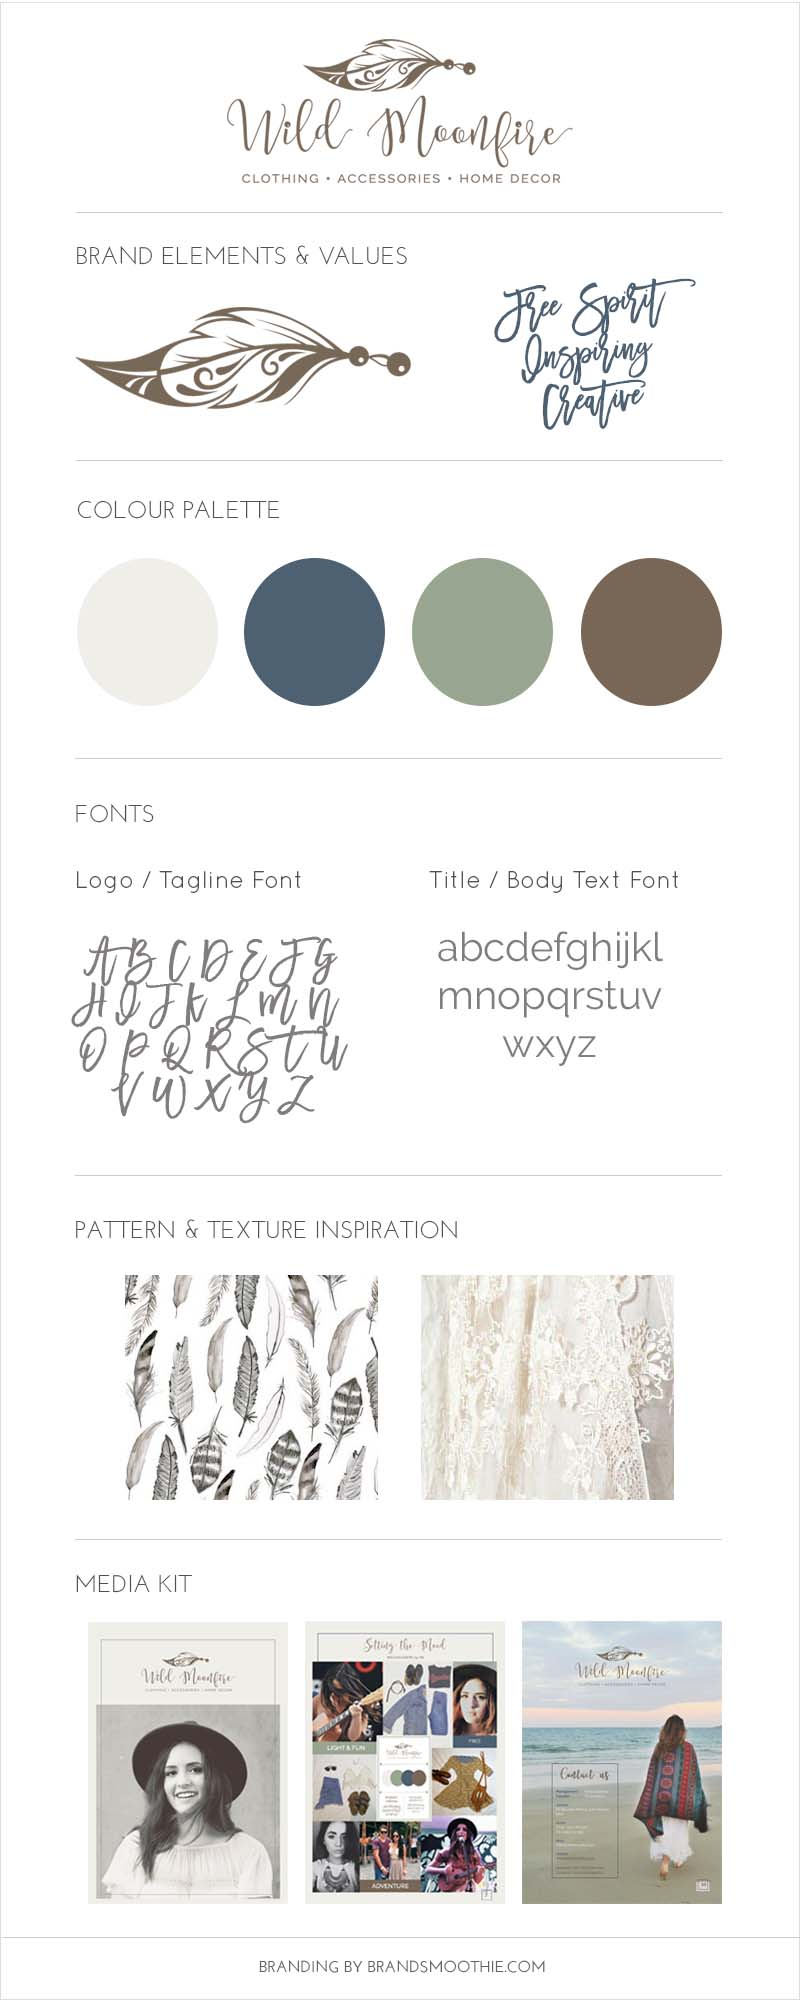 Wild Moonfire brand style board by Brand Smoothie